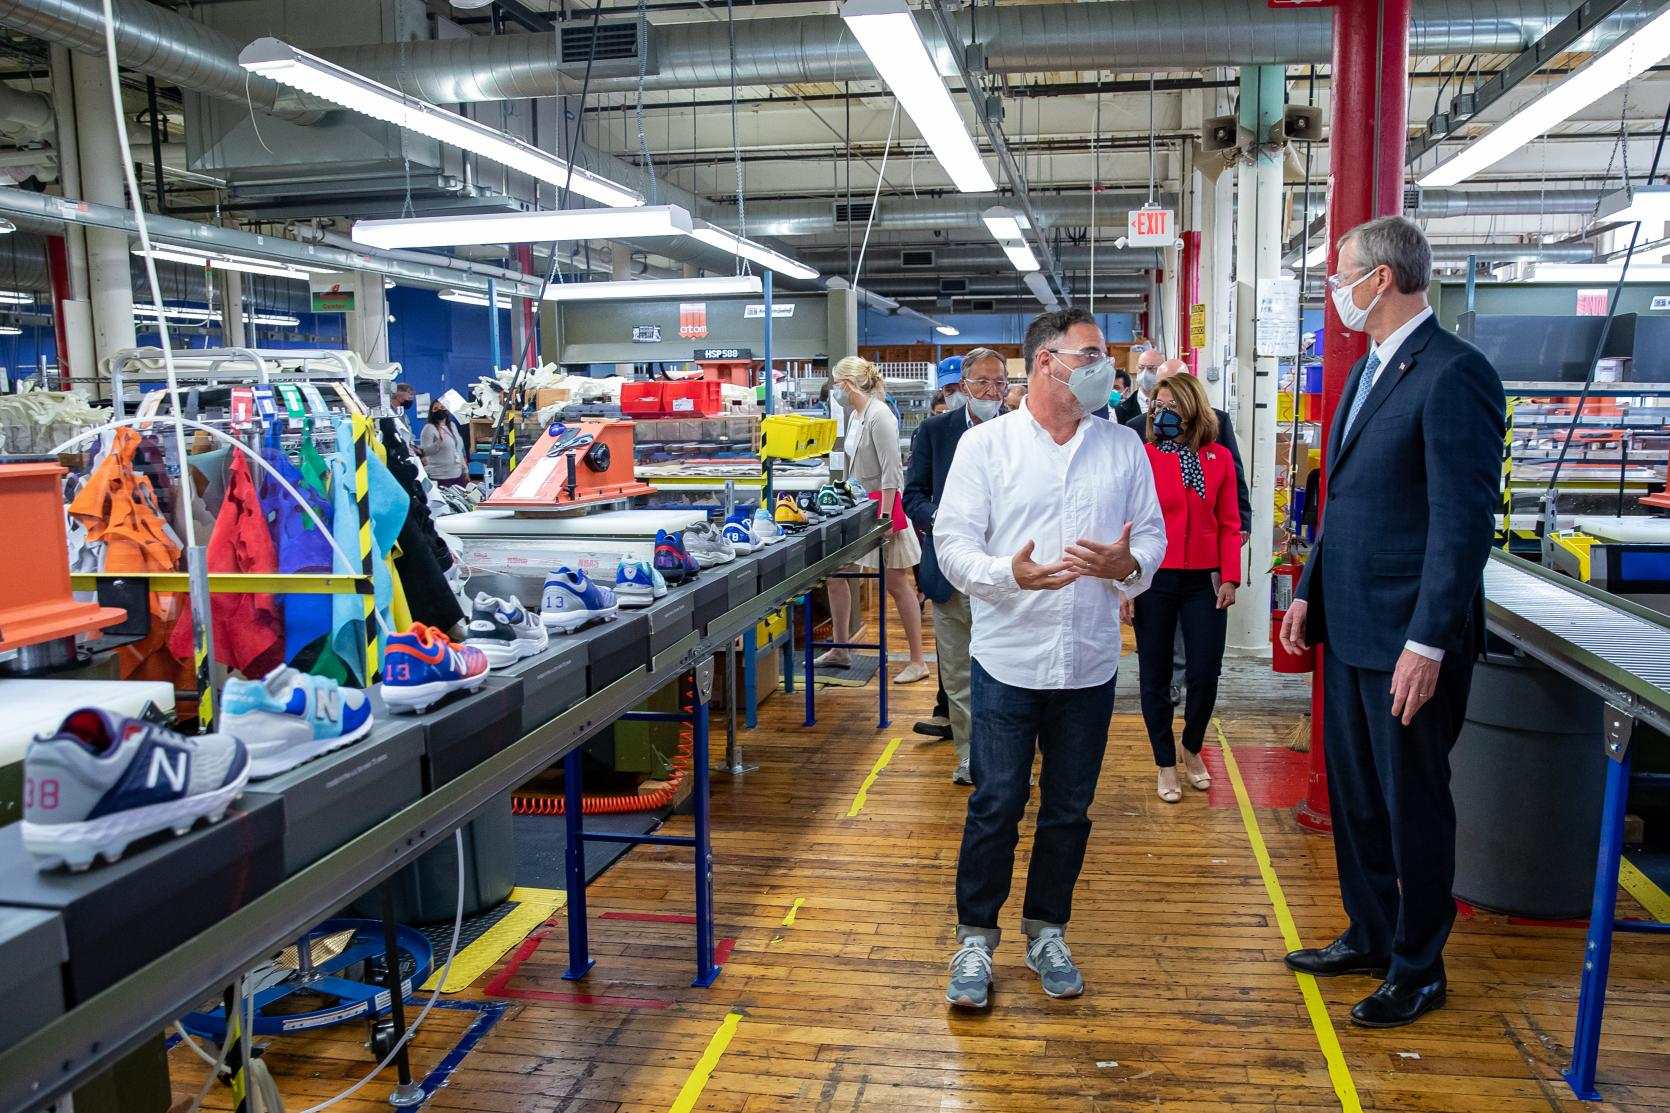 Baker-Polito Administration Visits Lawrence to Tour New Balance's PPE Production Line